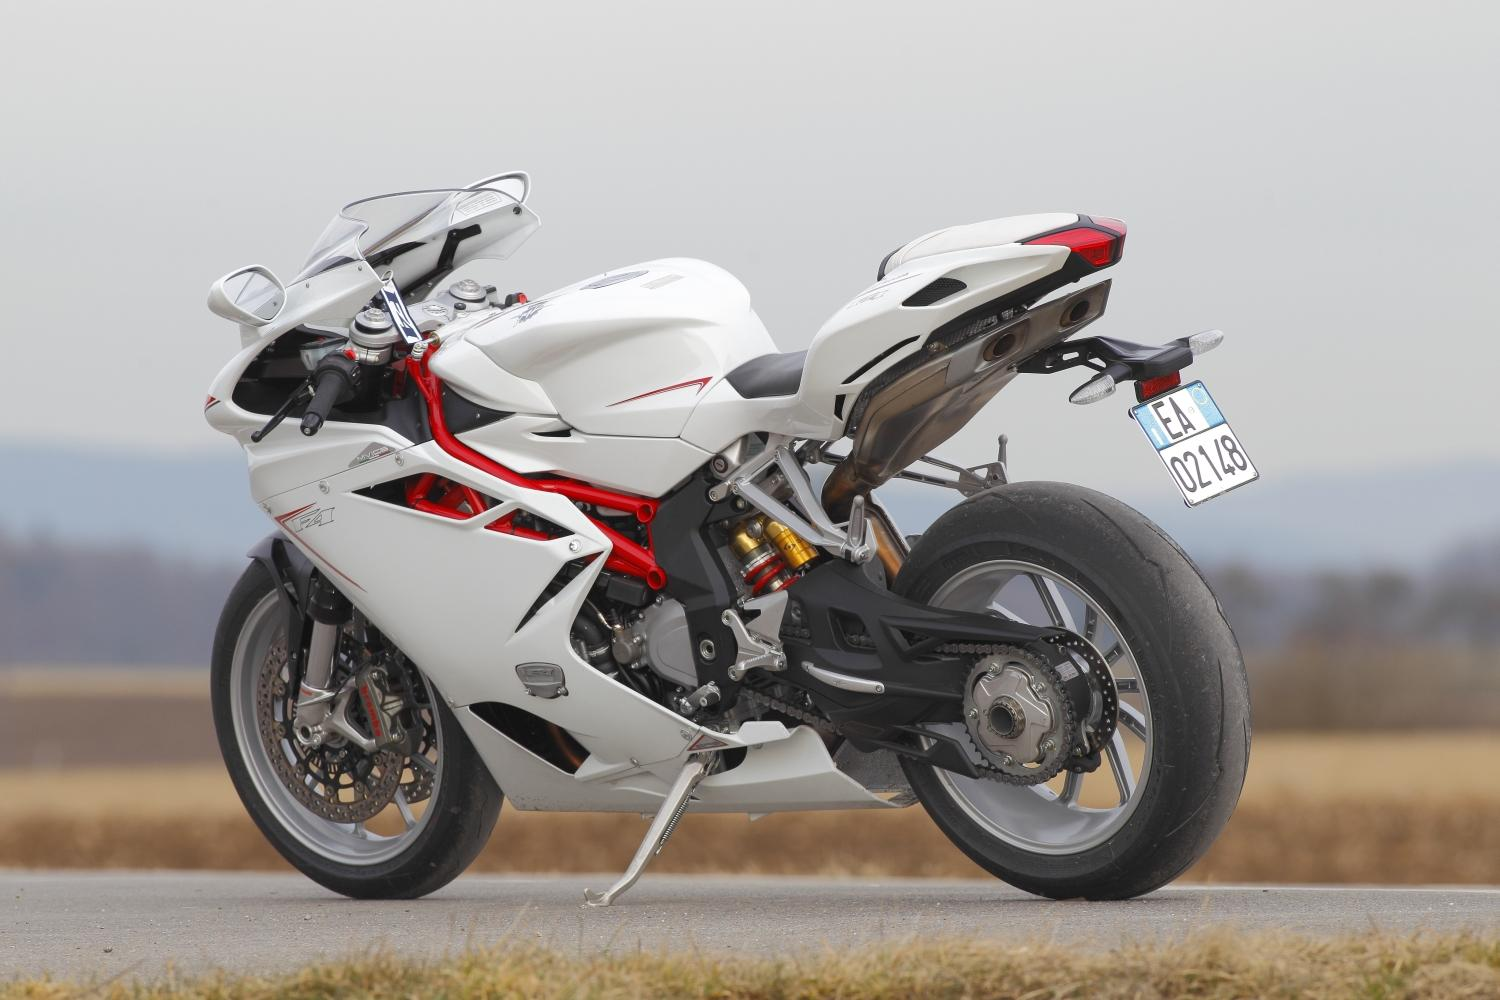 http://www.motorrad-bilder.at/slideshows/291/009266/mv-agusta-f4-005.jpg